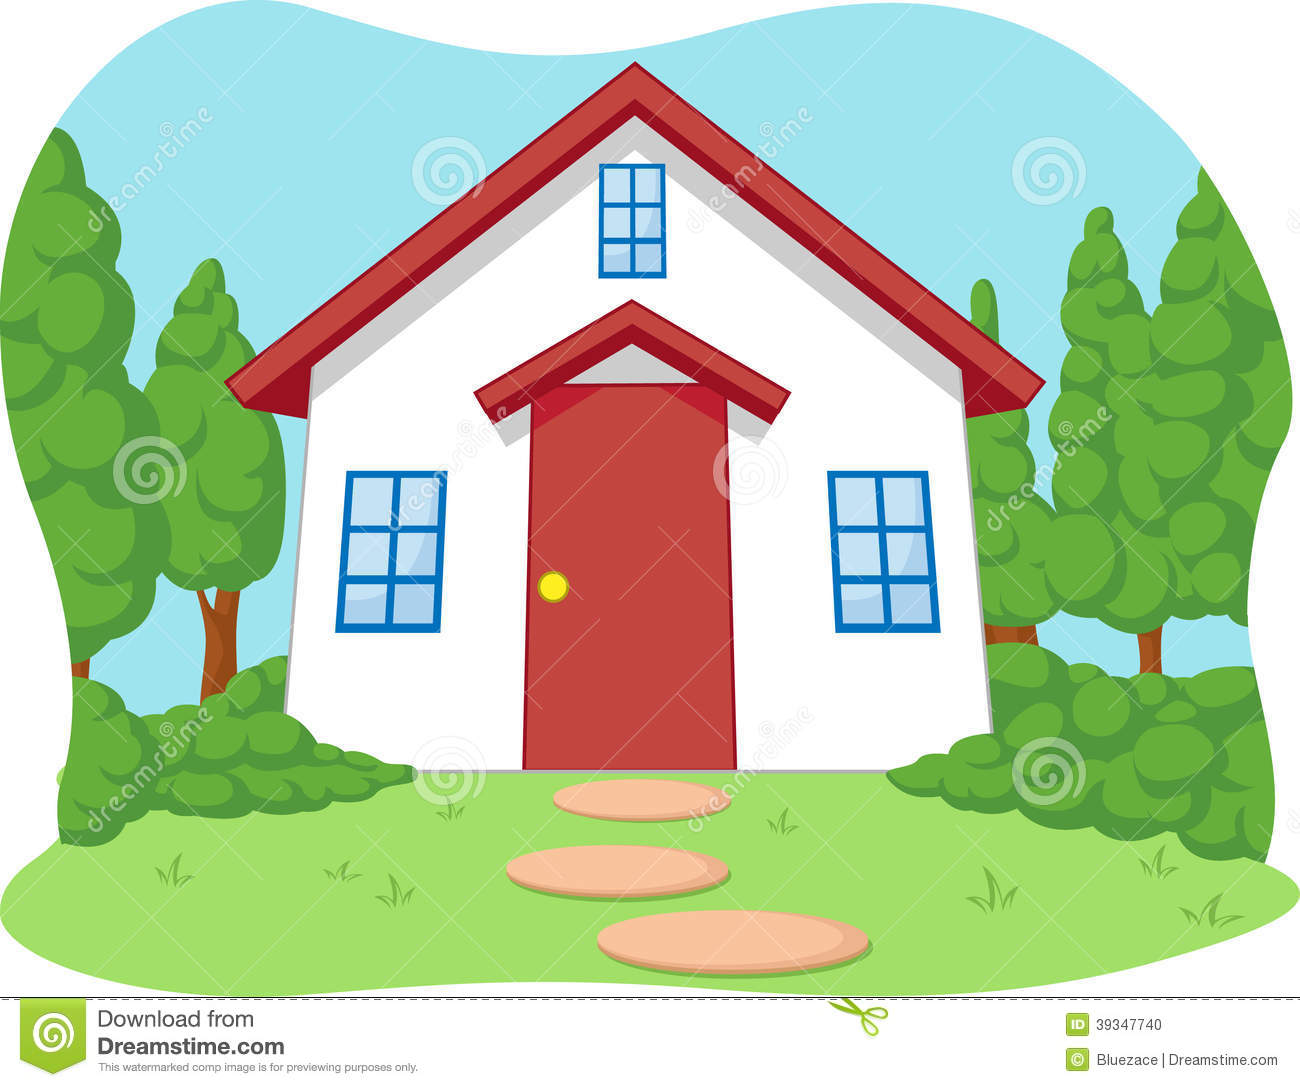 Cartoon of cute little house with garden stock vector for Casa y jardin tienda